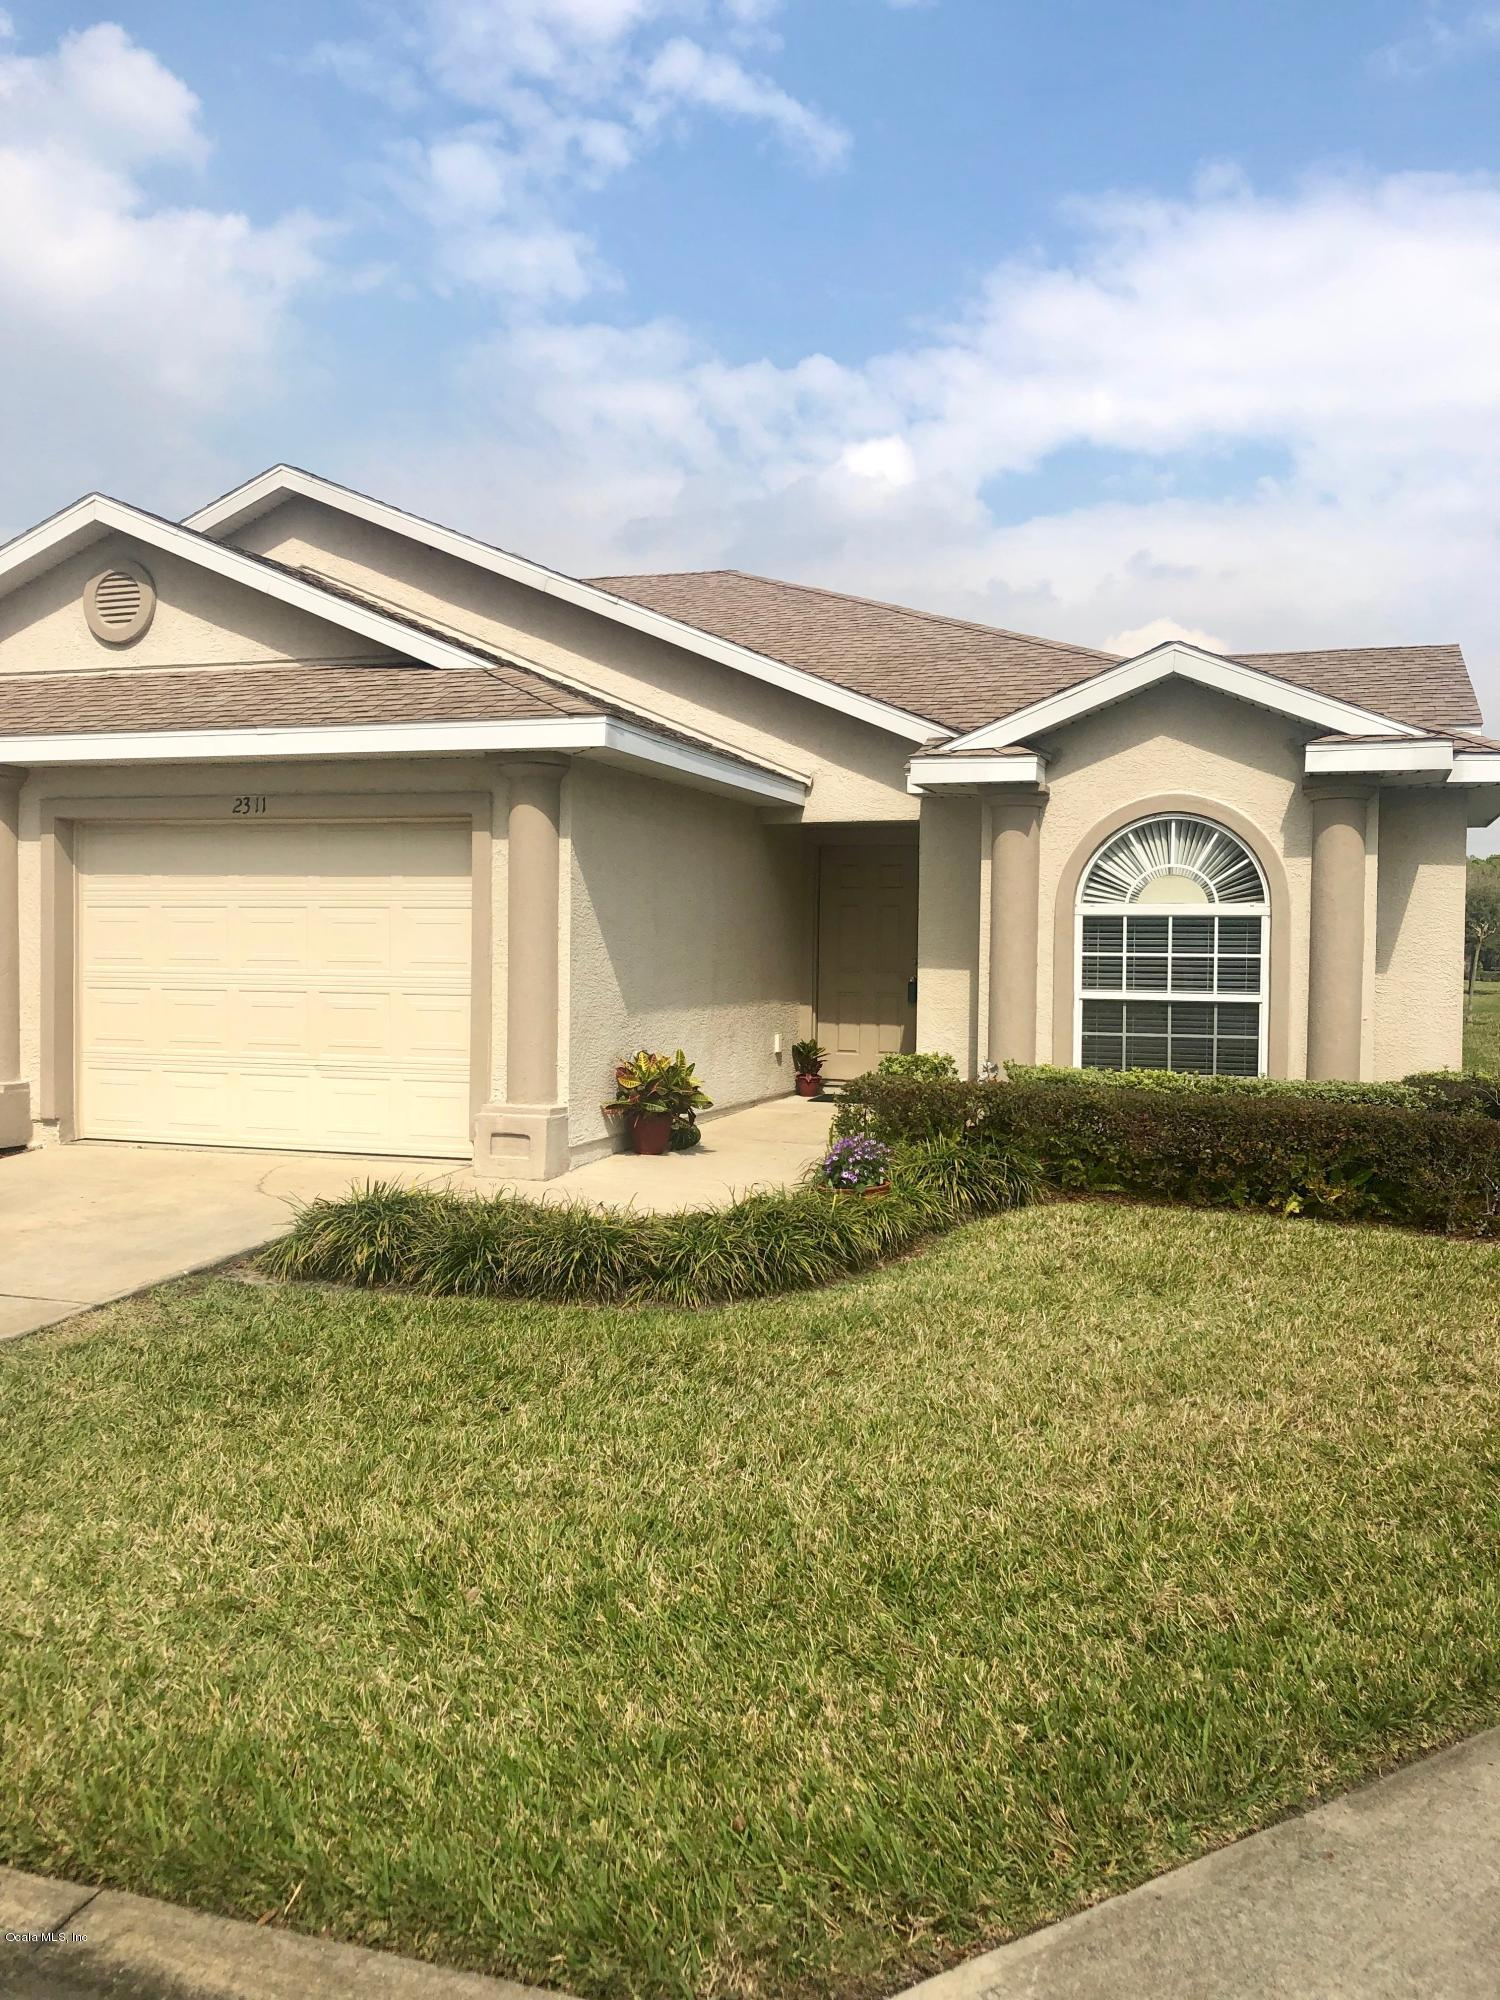 2311 SE 18th Circle, one of homes for sale in Ocala